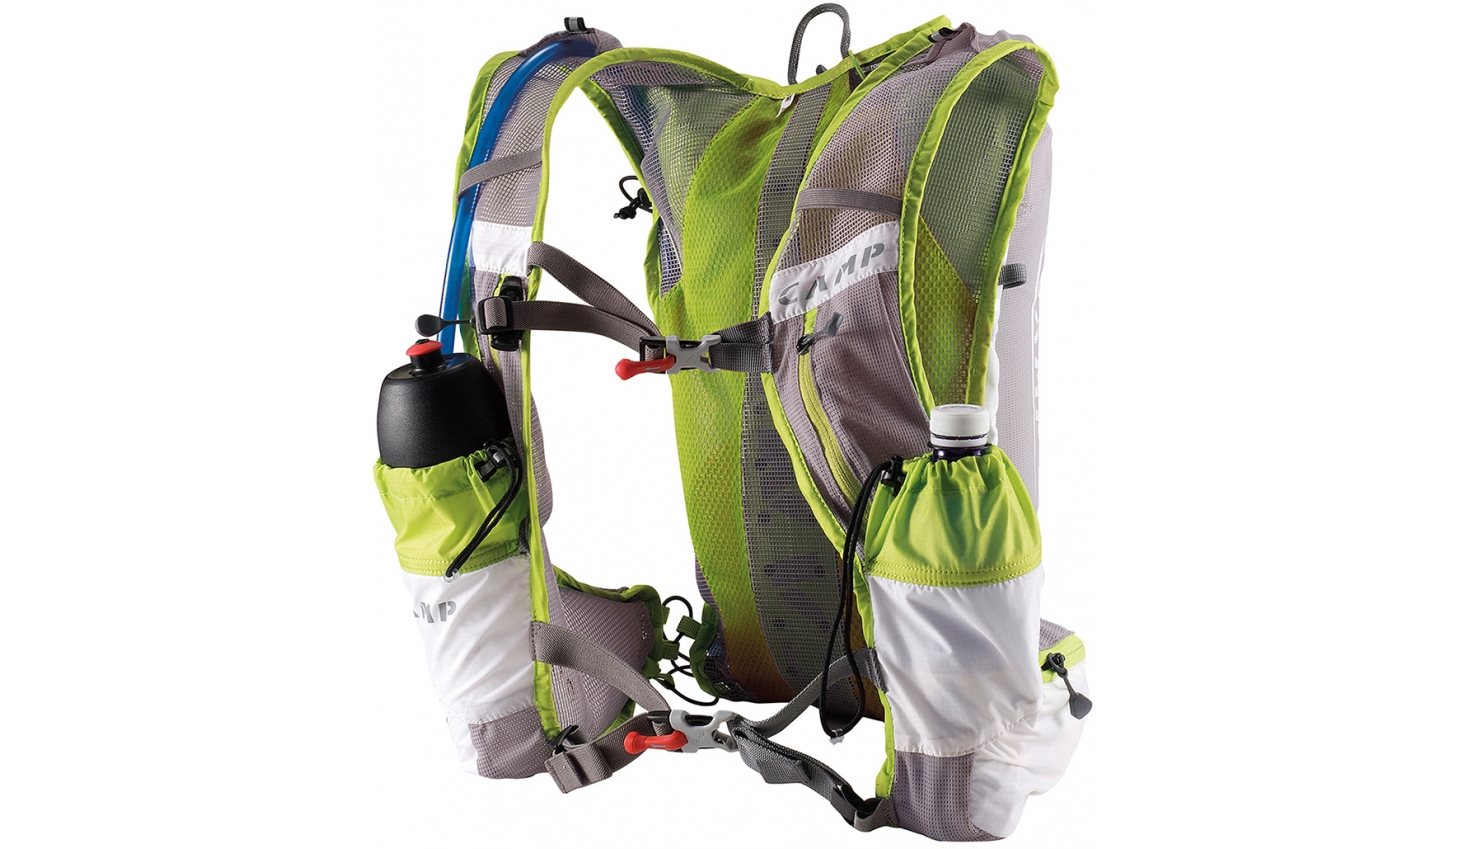 Camp_Trail_Vest_Light_Backpack_10_L_Green_White[1470x849]